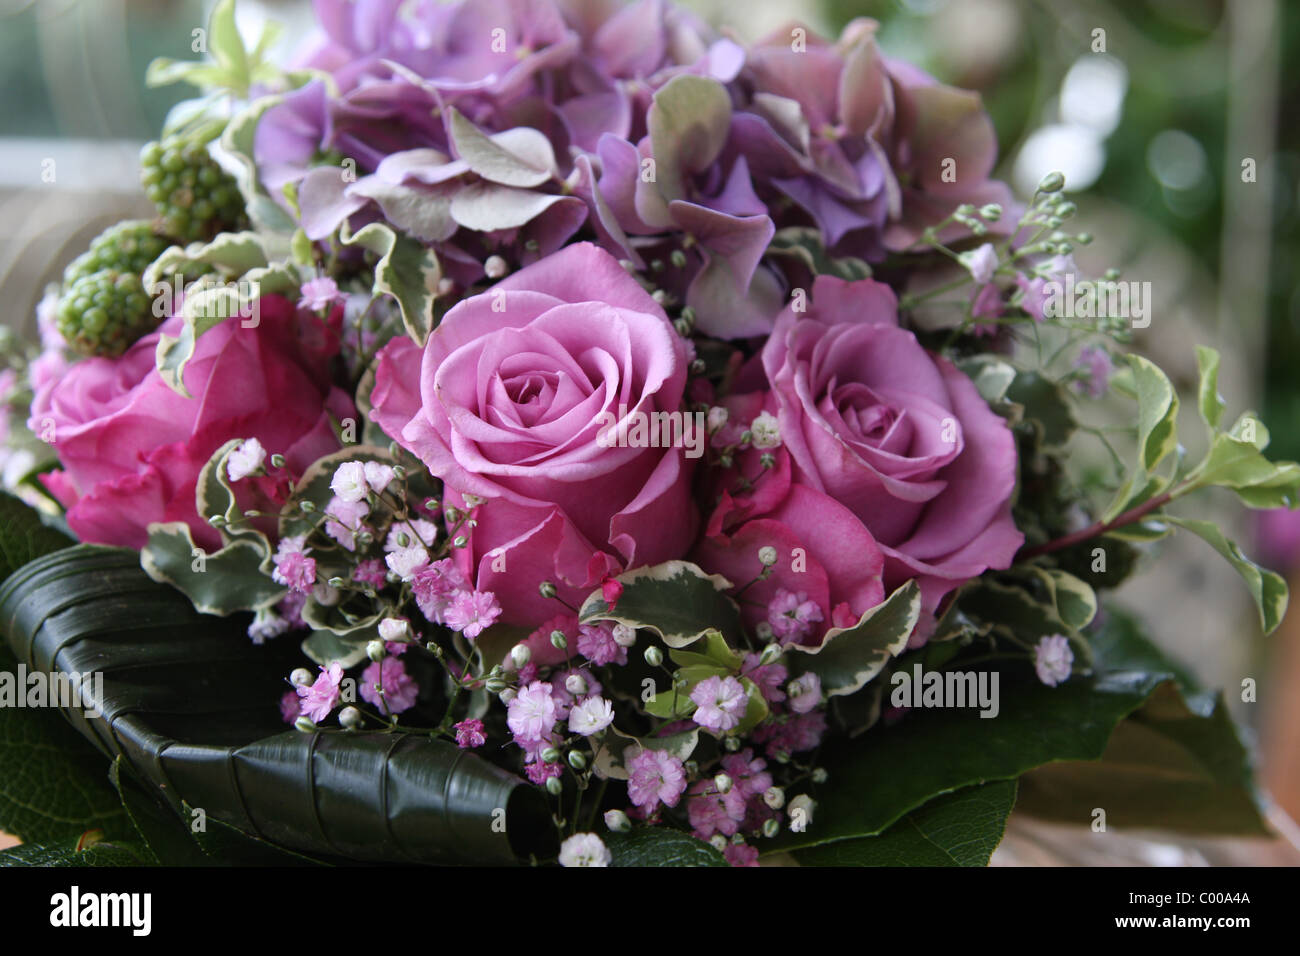 blumenarrangement blumenstrauss pinkfarbene rosen blumenstrau mit rosa rosen stockfoto bild. Black Bedroom Furniture Sets. Home Design Ideas